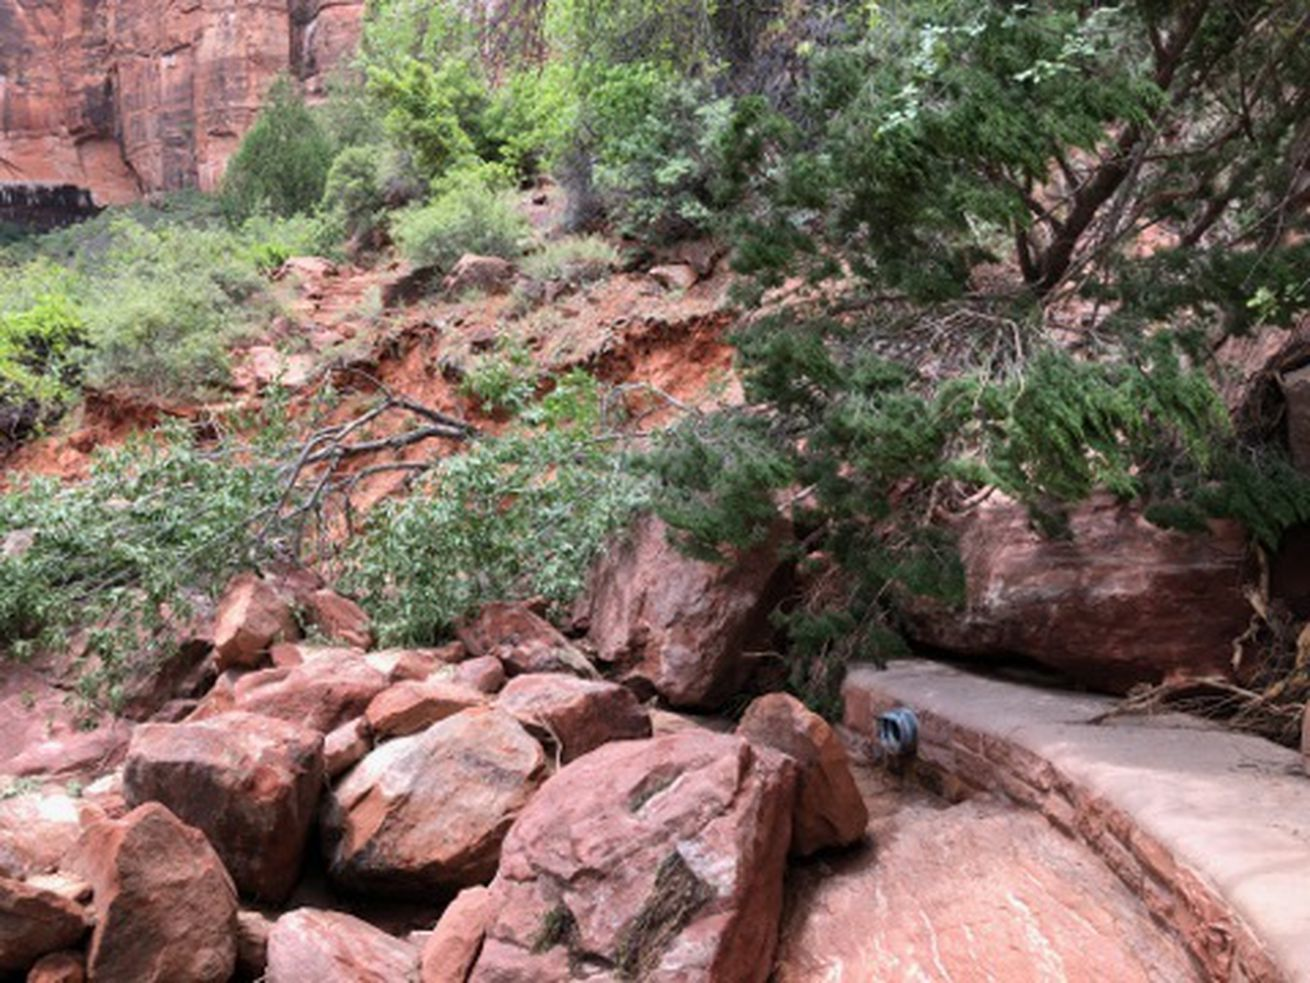 Kayenta Trail in Zion National Park reopened